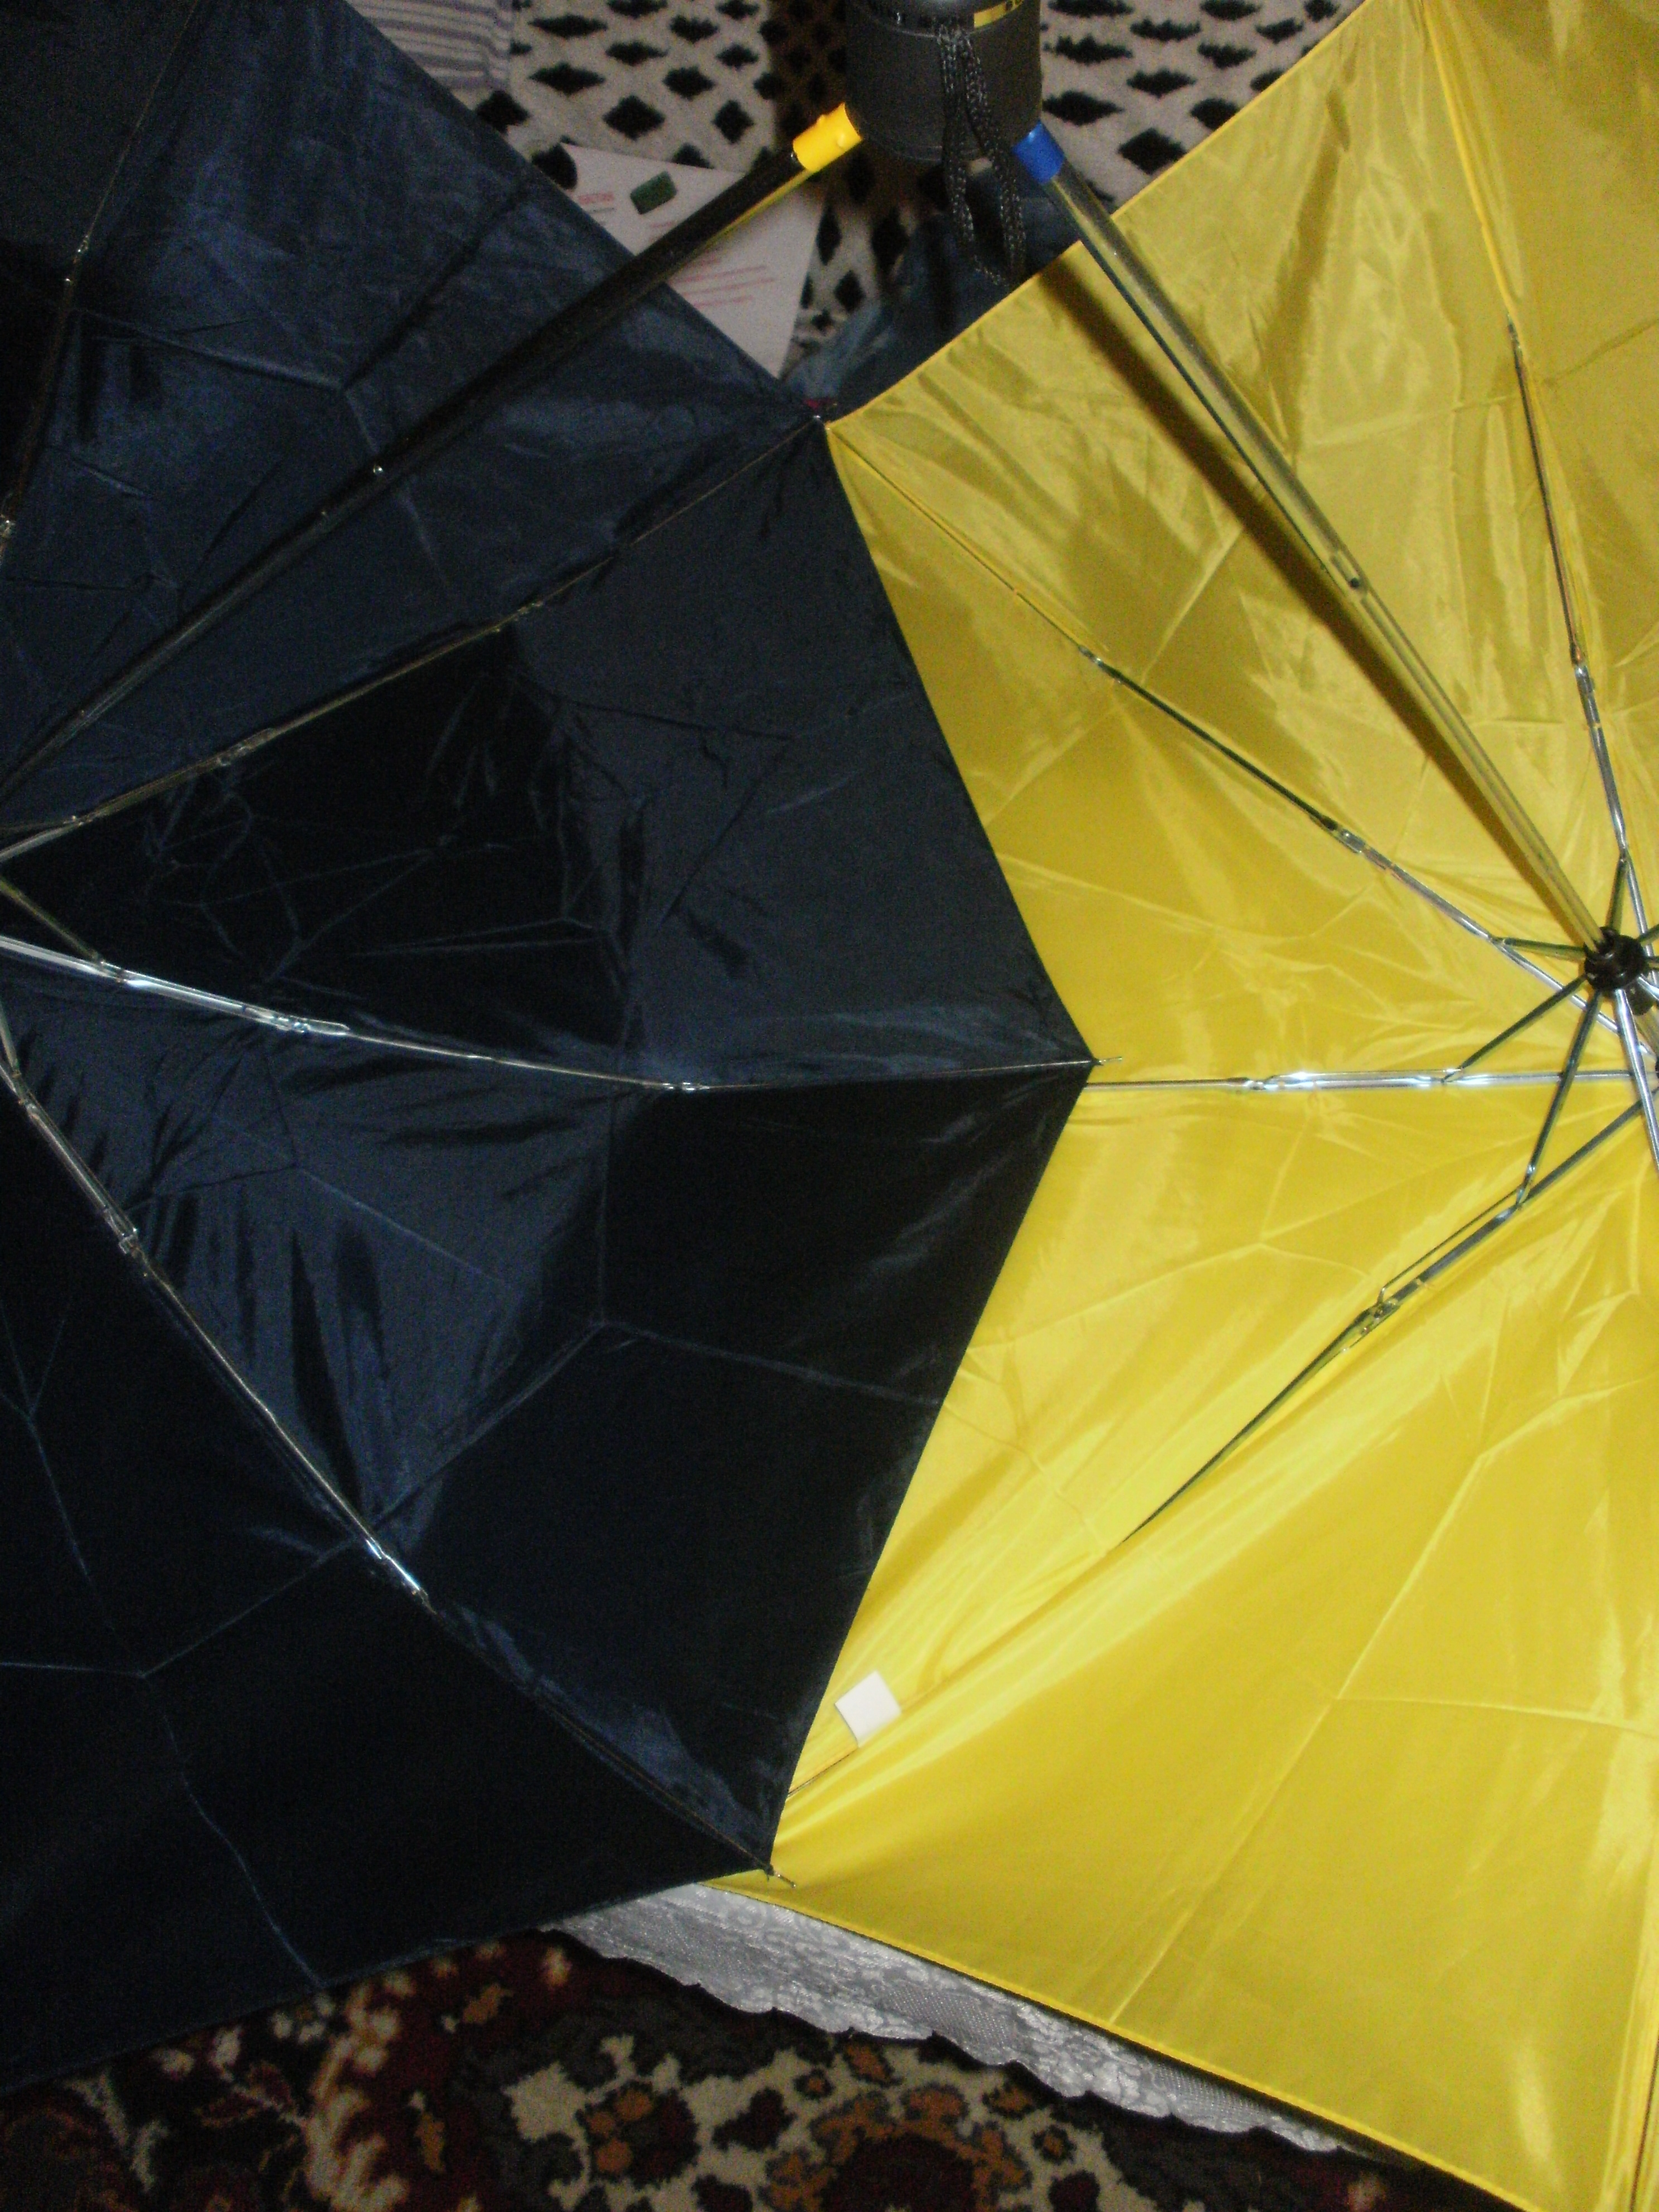 Picture of The Plan - Second Part - Double Umbrella